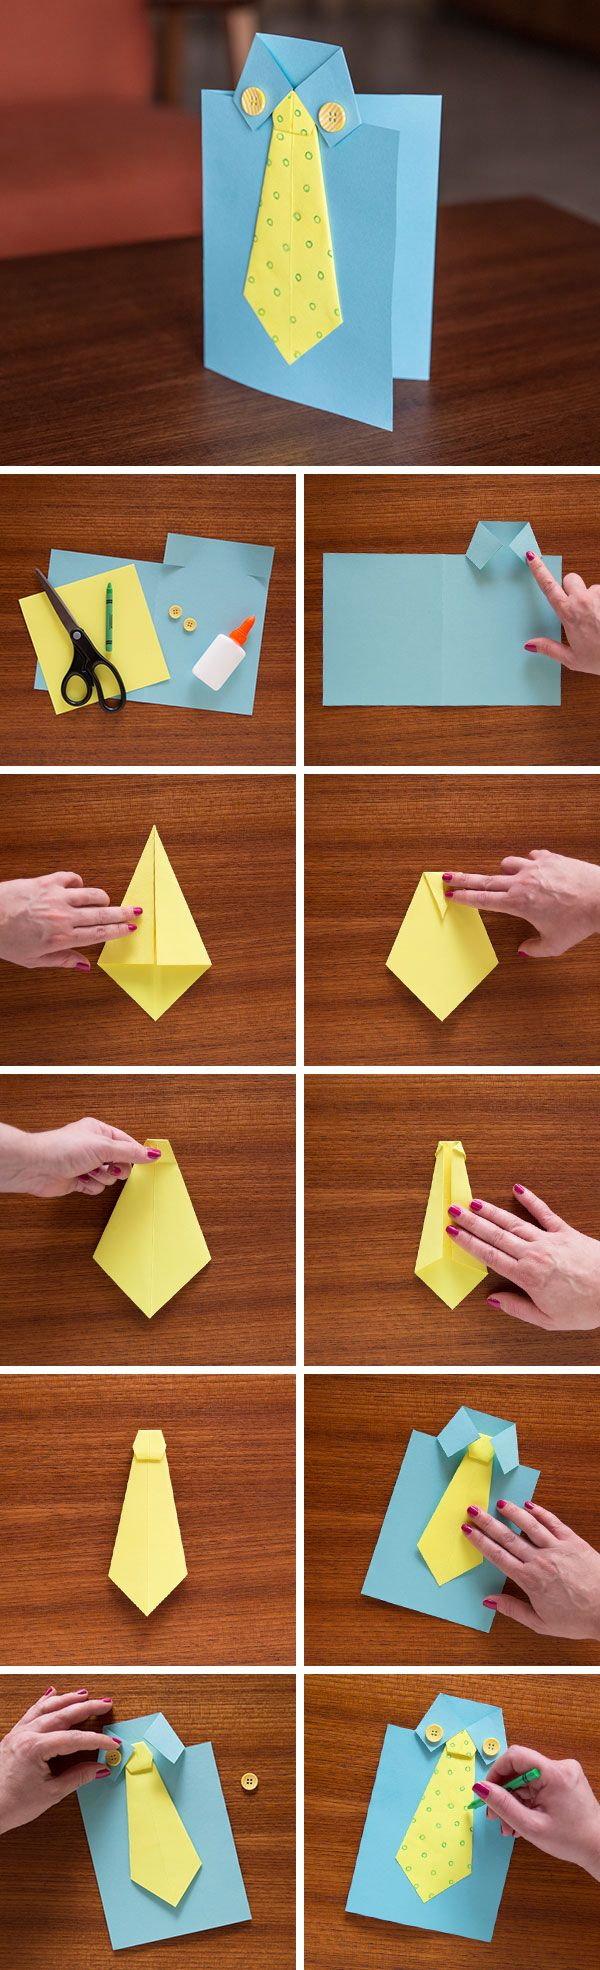 Help the kids make dad something special this Father's Day with an easy, mess-free craft.